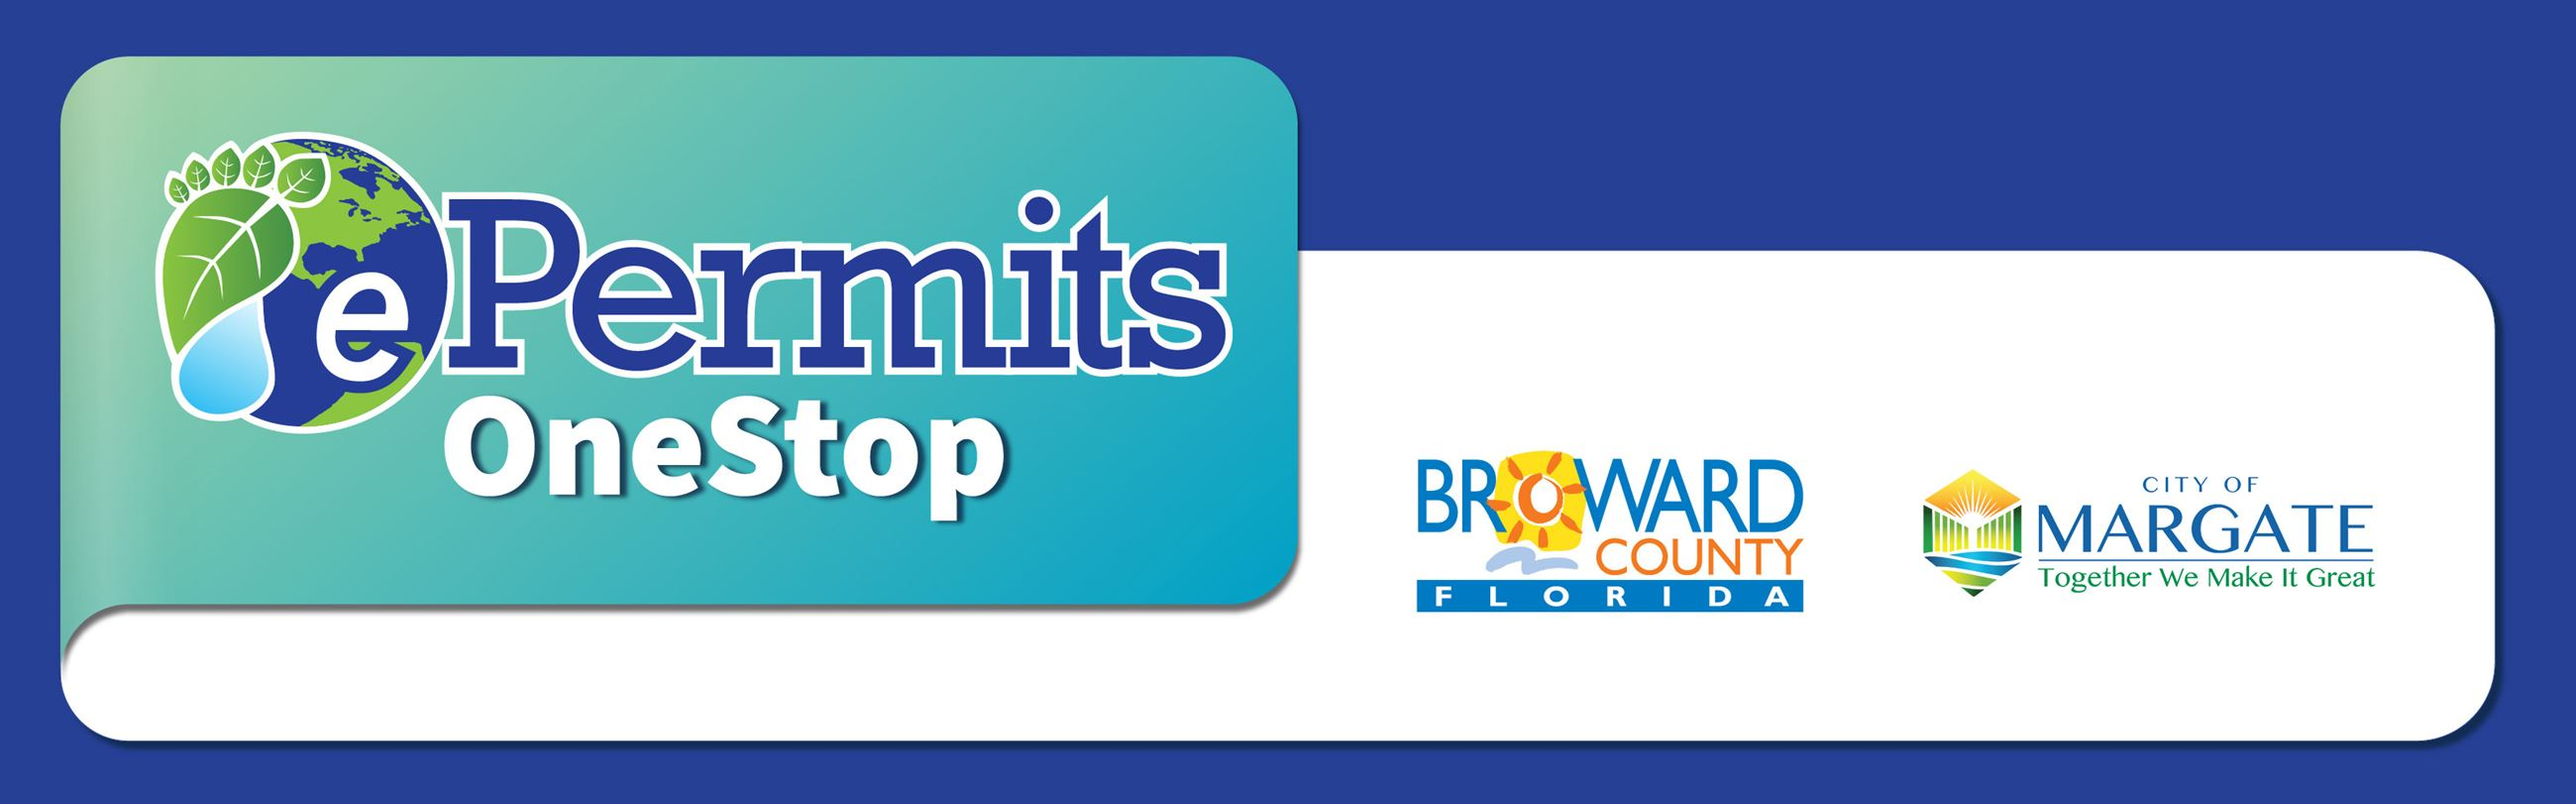 Header Broward Margate ePermits